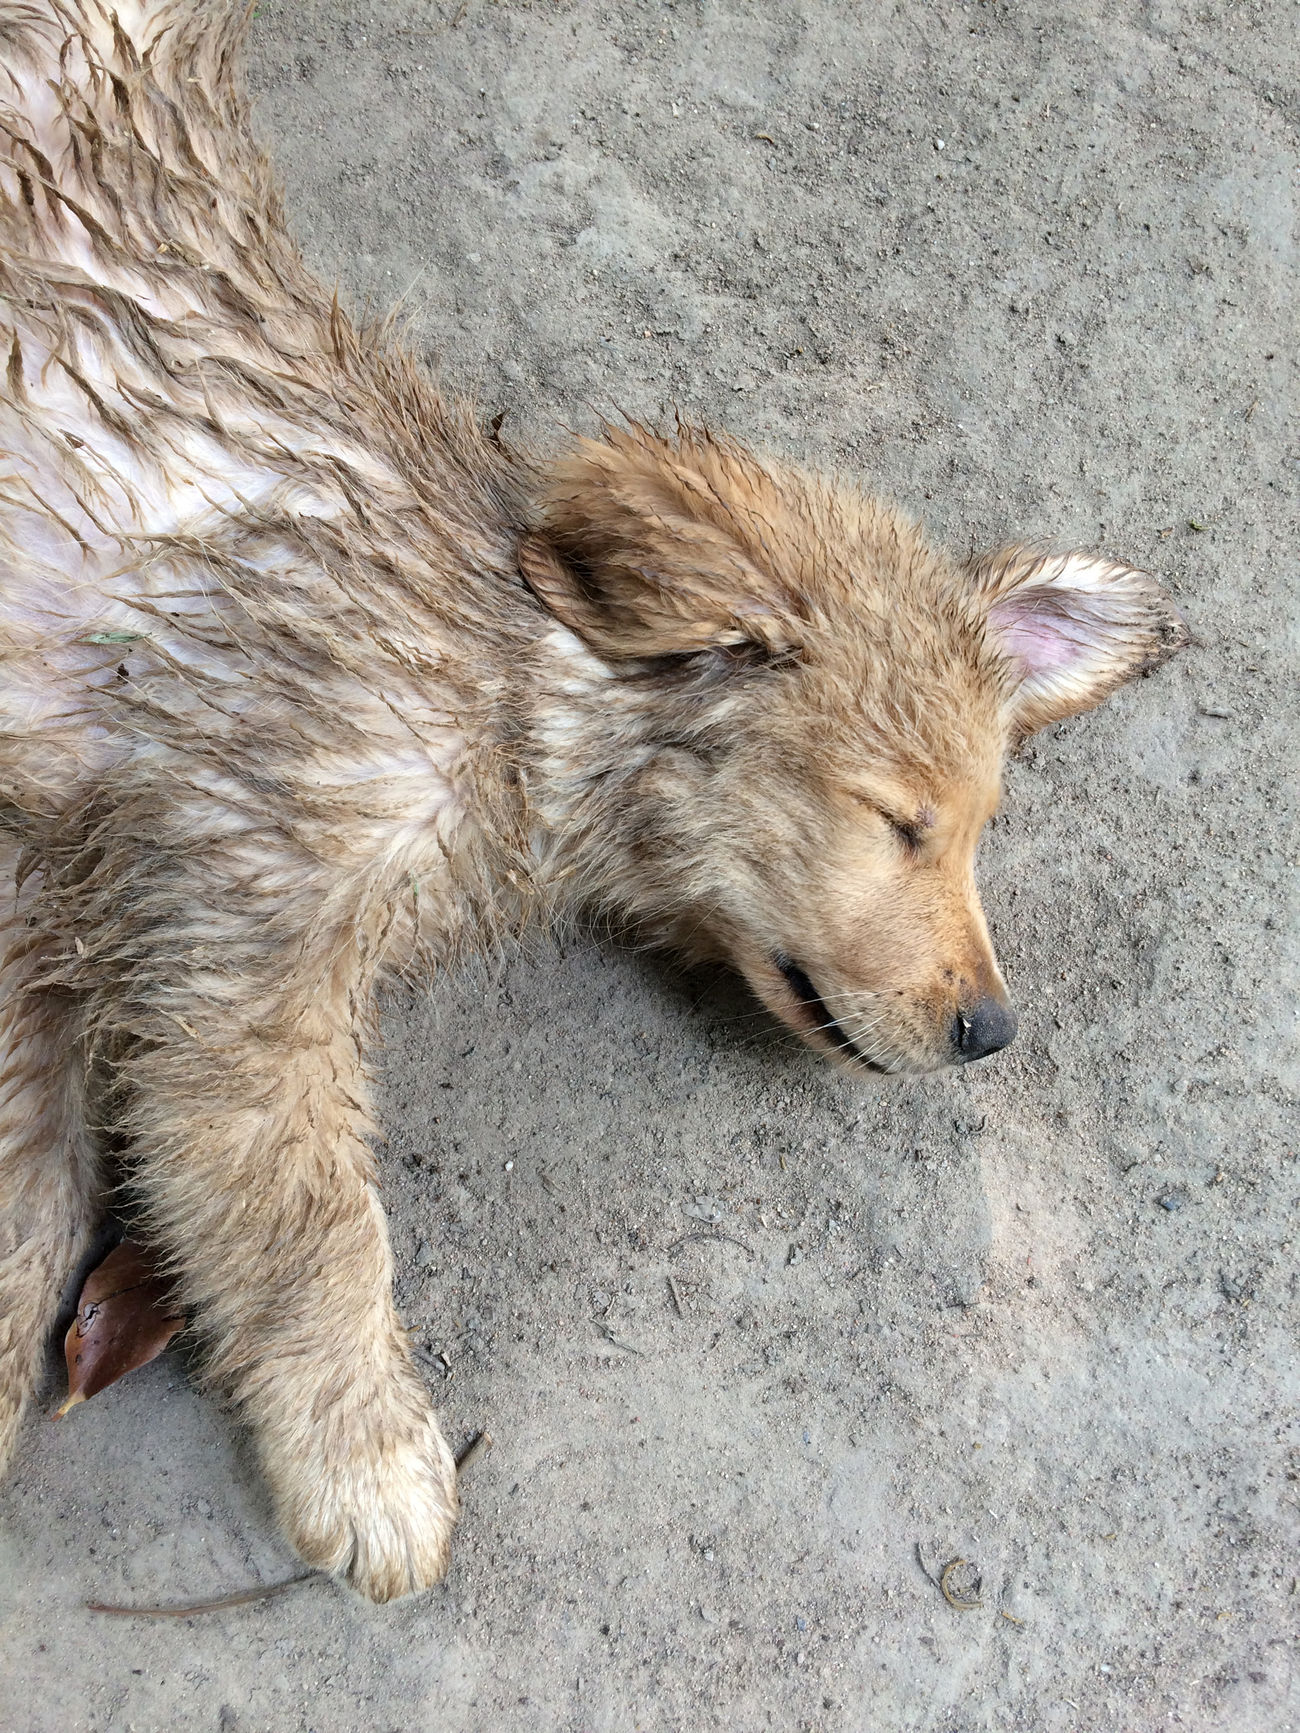 Sleepy Sleeping Animal Themes Animal Wildlife Animals In The Wild Close-up Day Dirty Dog Domestic Animals Funny Golden Retriever Goldenretriever High Angle View Lazy Lazy Day Mammal No People One Animal Outdoors Playing Puppies Puppy Raccoon Sleeping Sleepy Take A Break